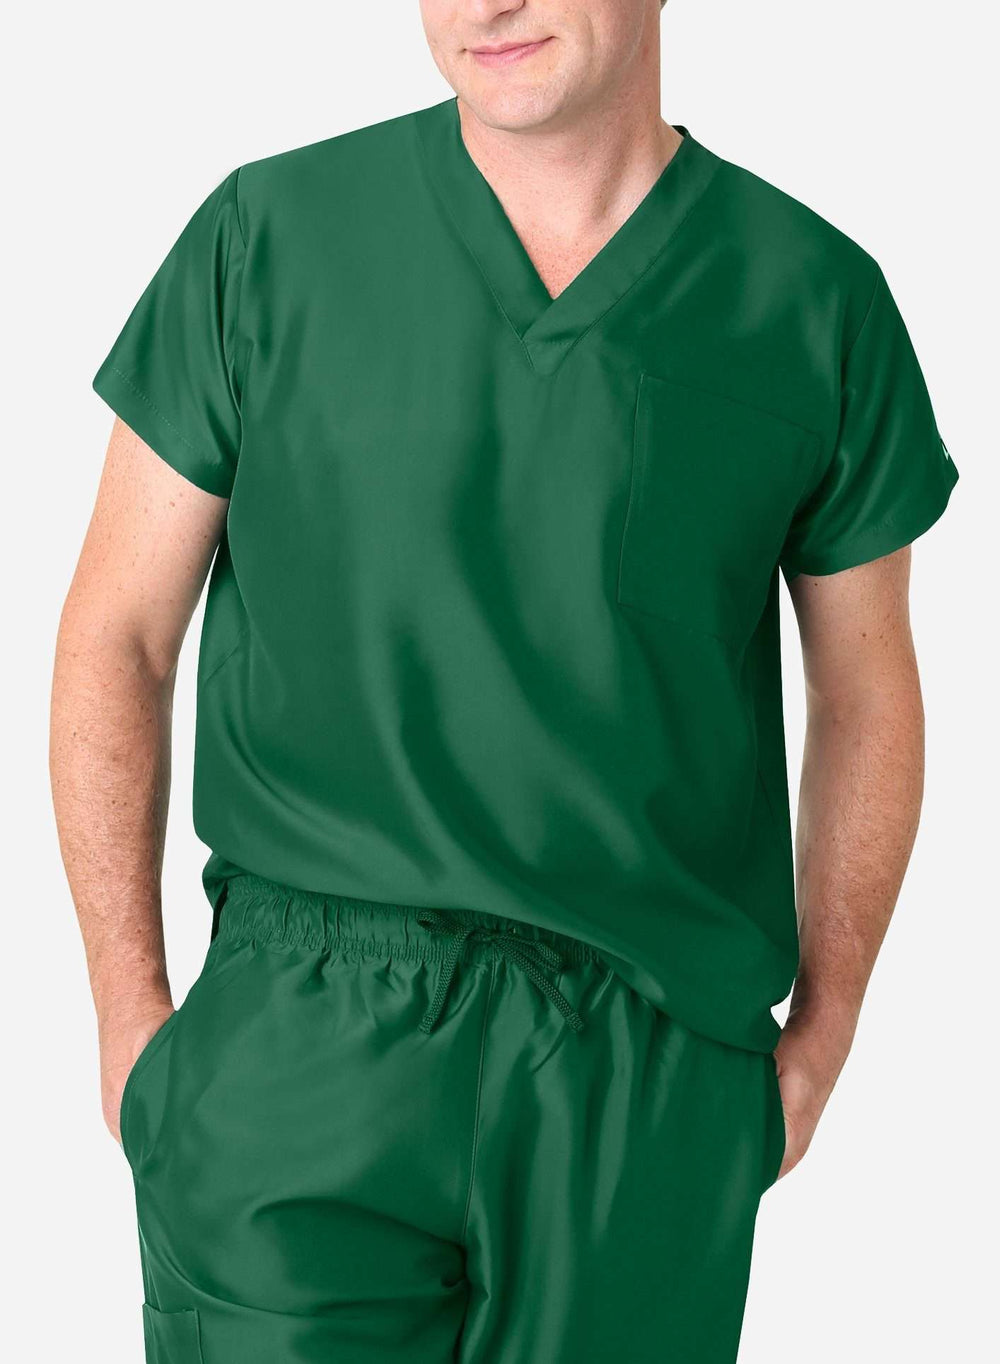 mens simple short sleeve chest pocket scrub top dark green